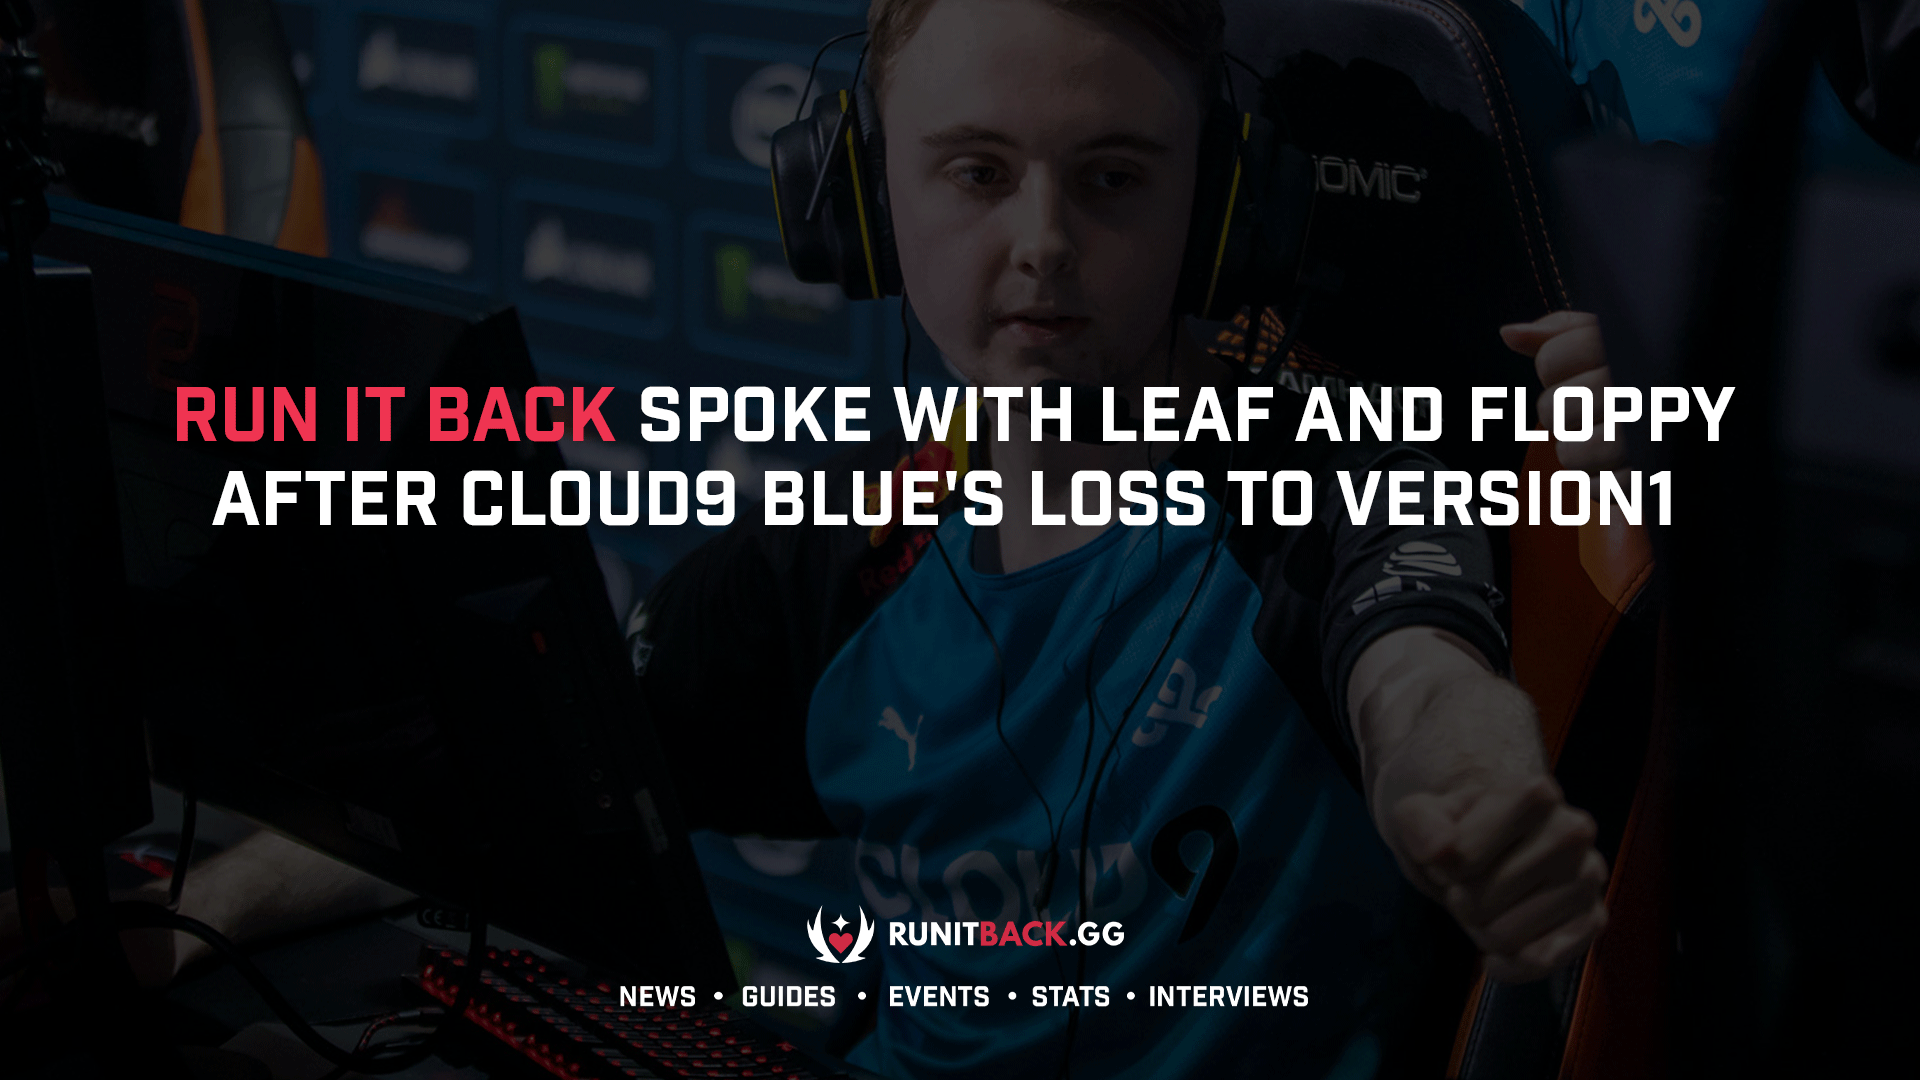 Run It Back spoke with leaf and floppy after Cloud9 Blue's loss to Version1